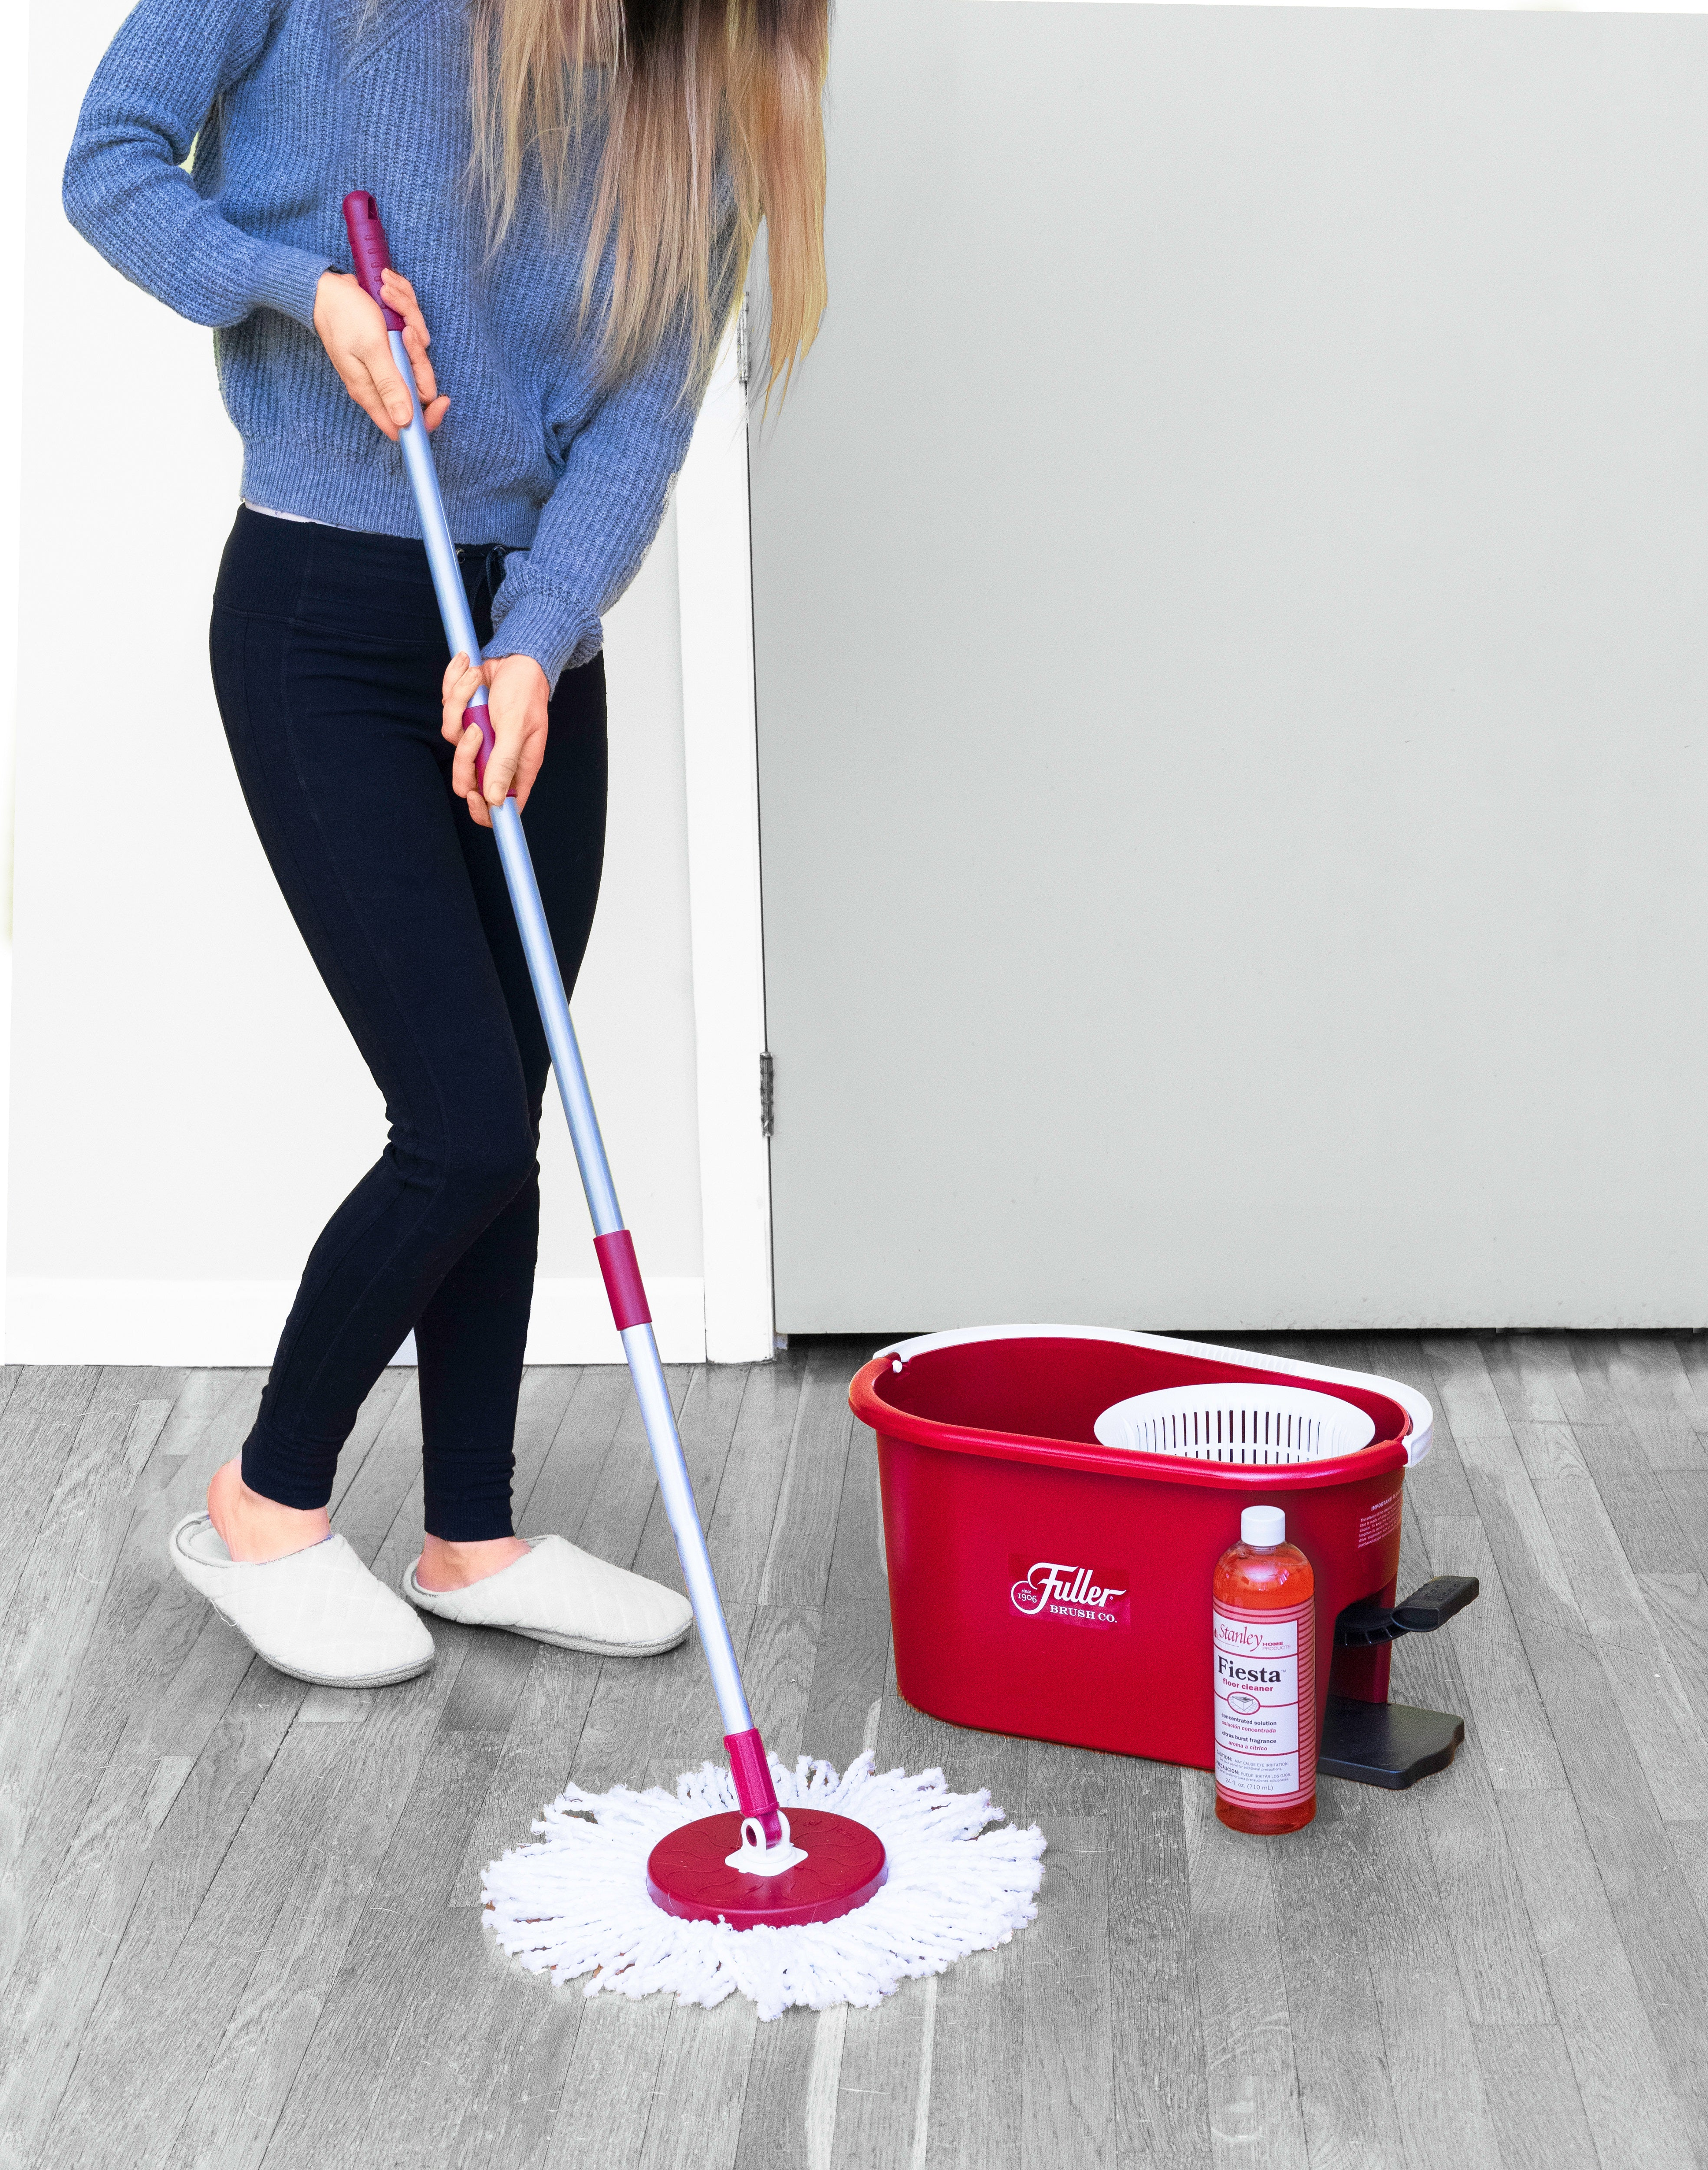 Spin Mop Bucket System - Easy Wring 360° Spin - Streak Free Floor Cleaning - 2 Microfiber Heads